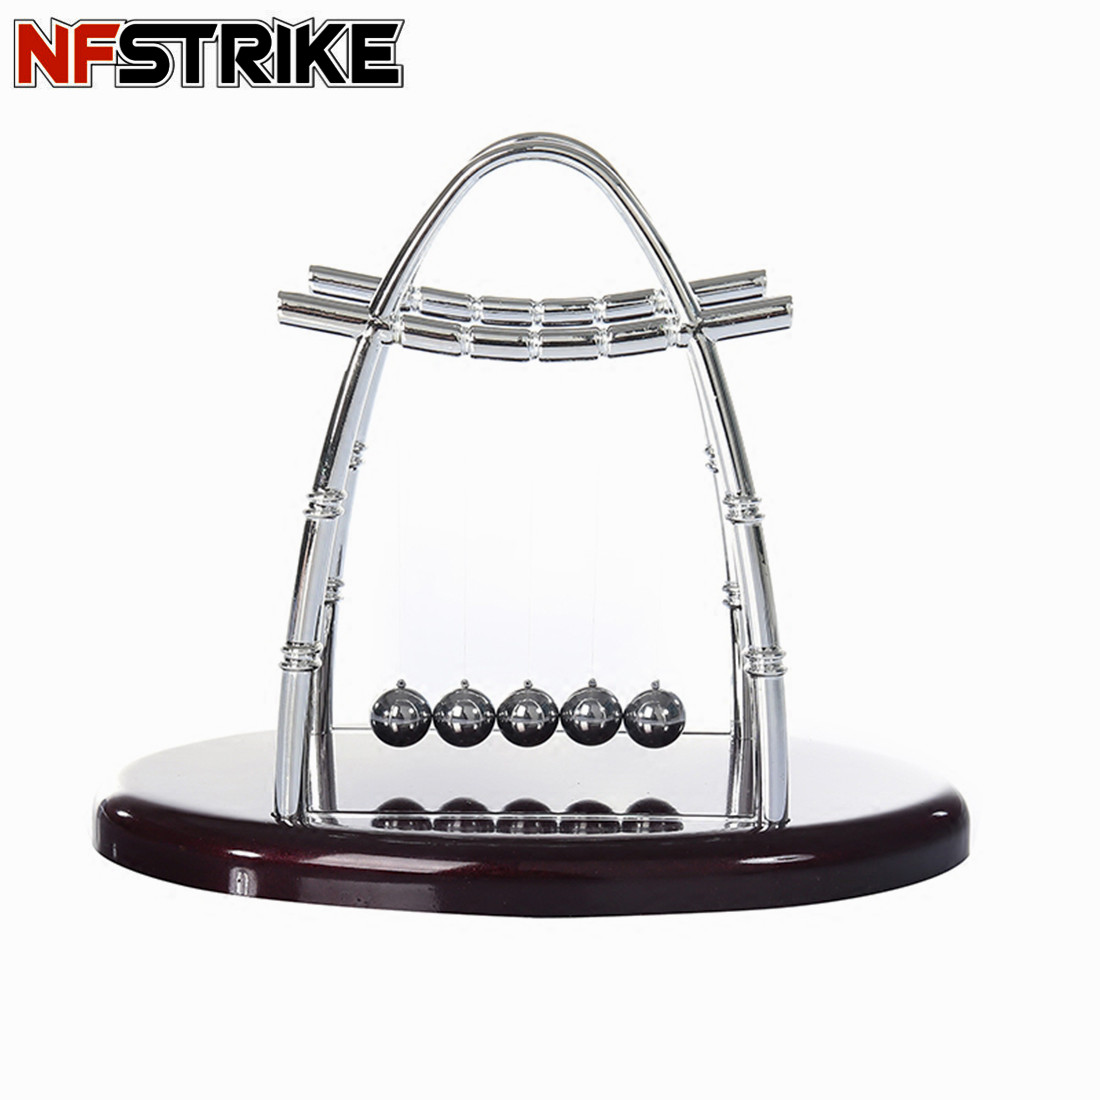 NFSTRIKE Stress Reliever Toys For Office Fidget Roller Newton Cradle Balance Ball Science Puzzle Fun Desk Decompression Toy New